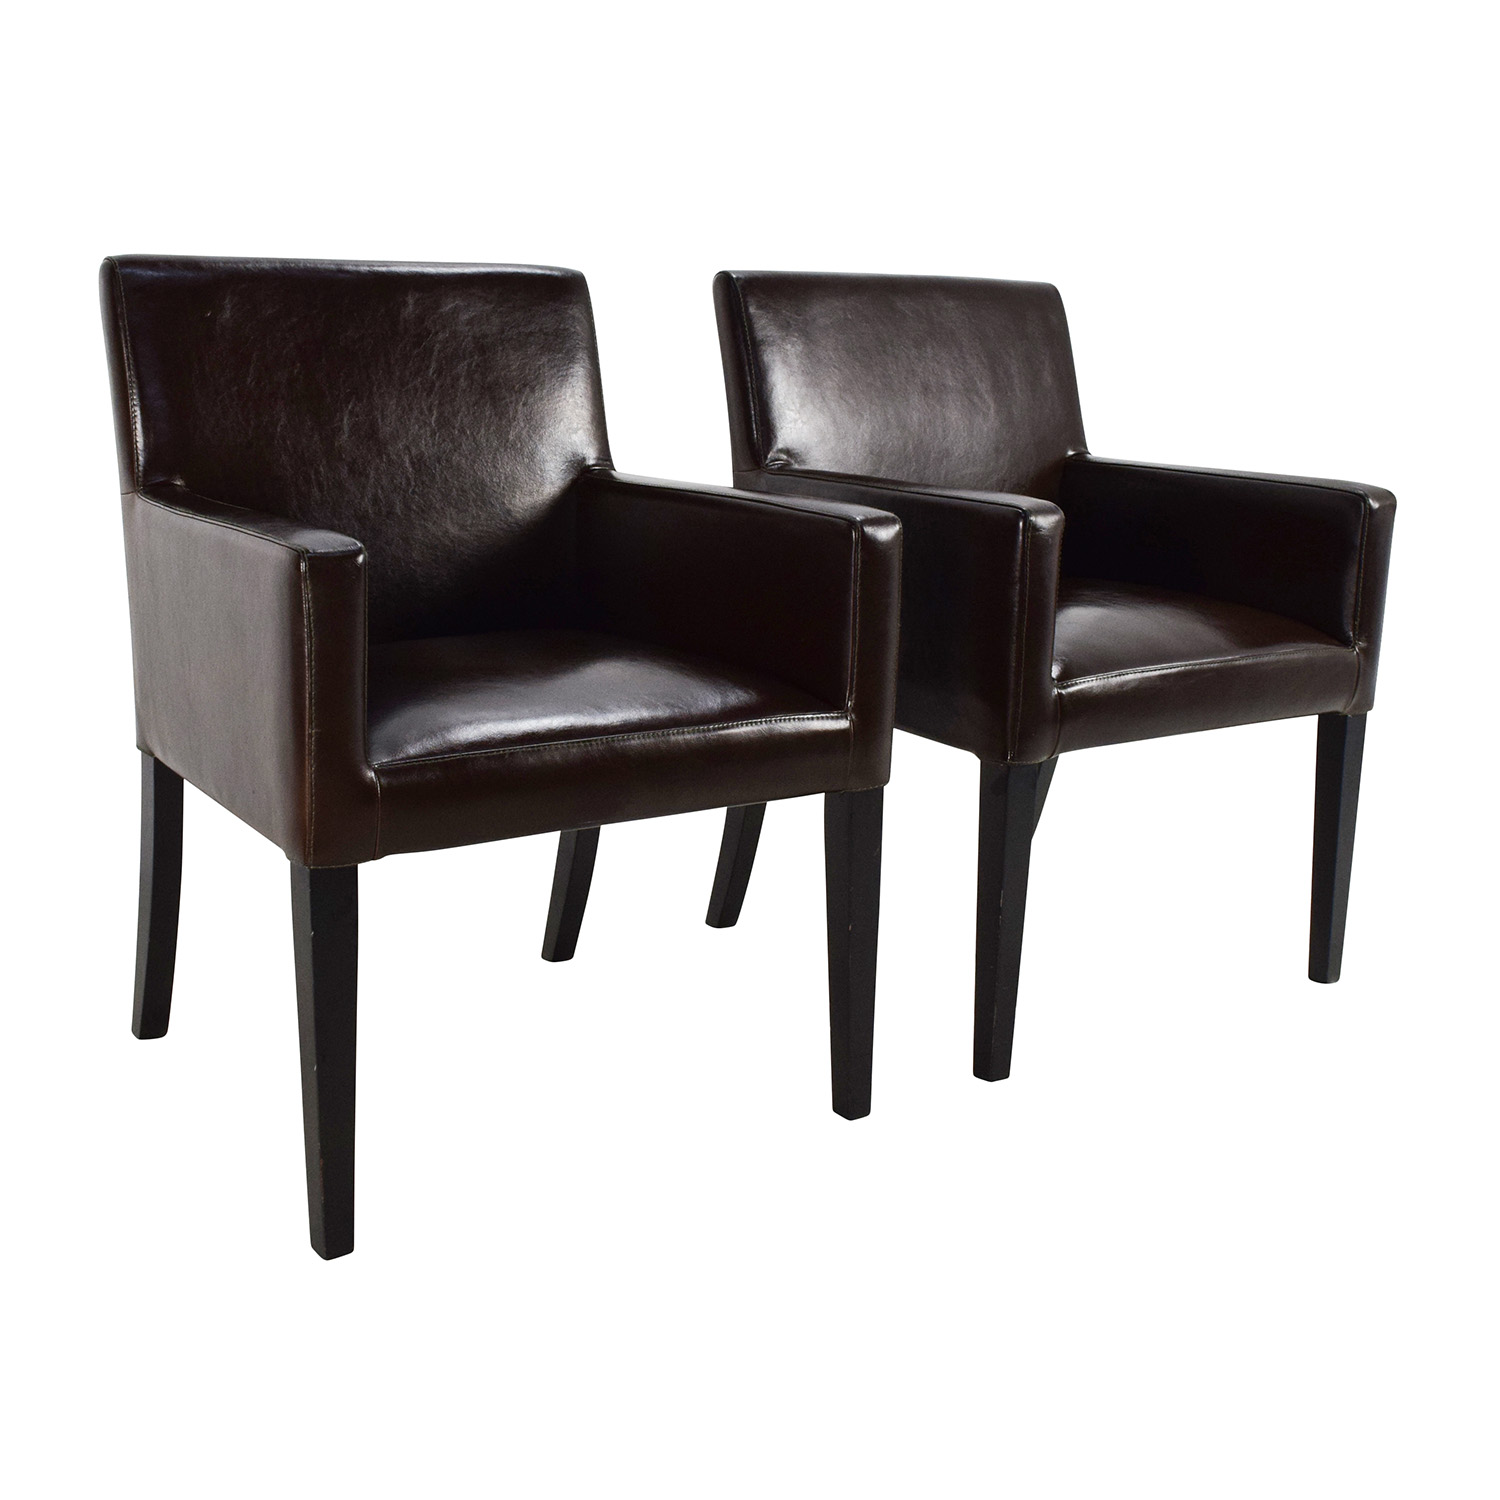 82 OFF  Black Leather Office Chairs  Chairs